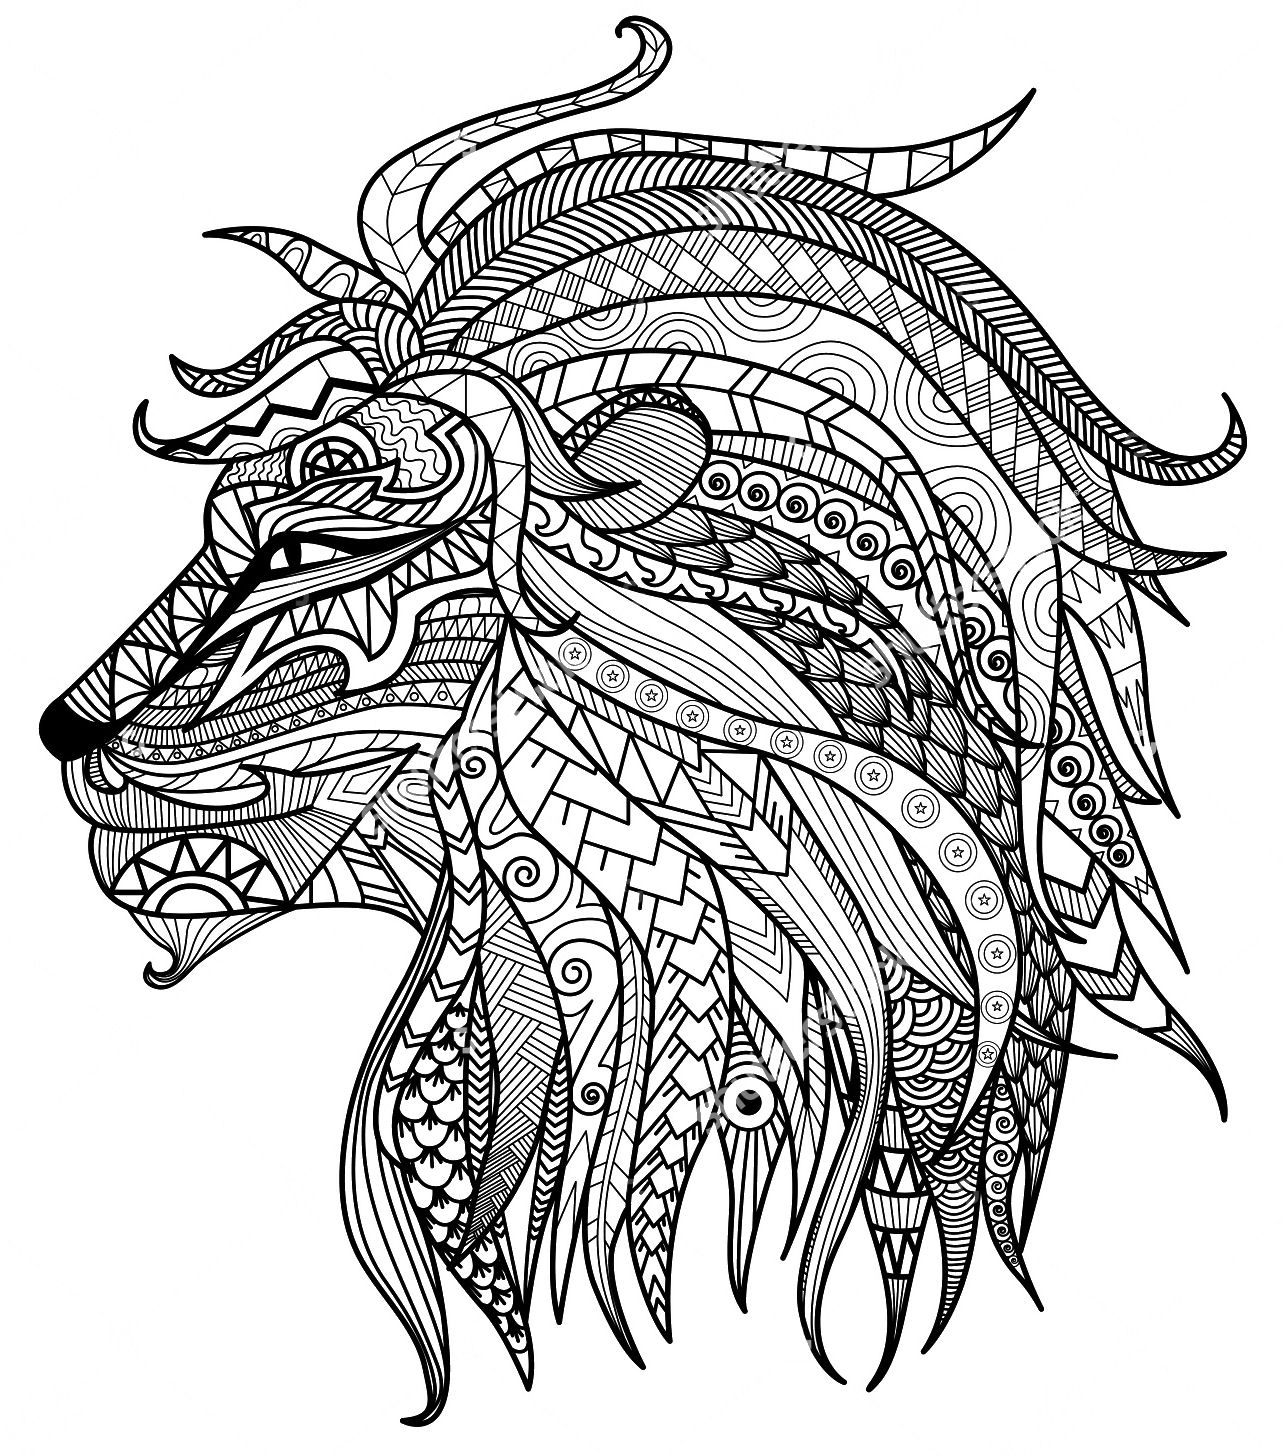 1283x1456 Adult Coloring Pages Lion Head Adult Coloring Pages